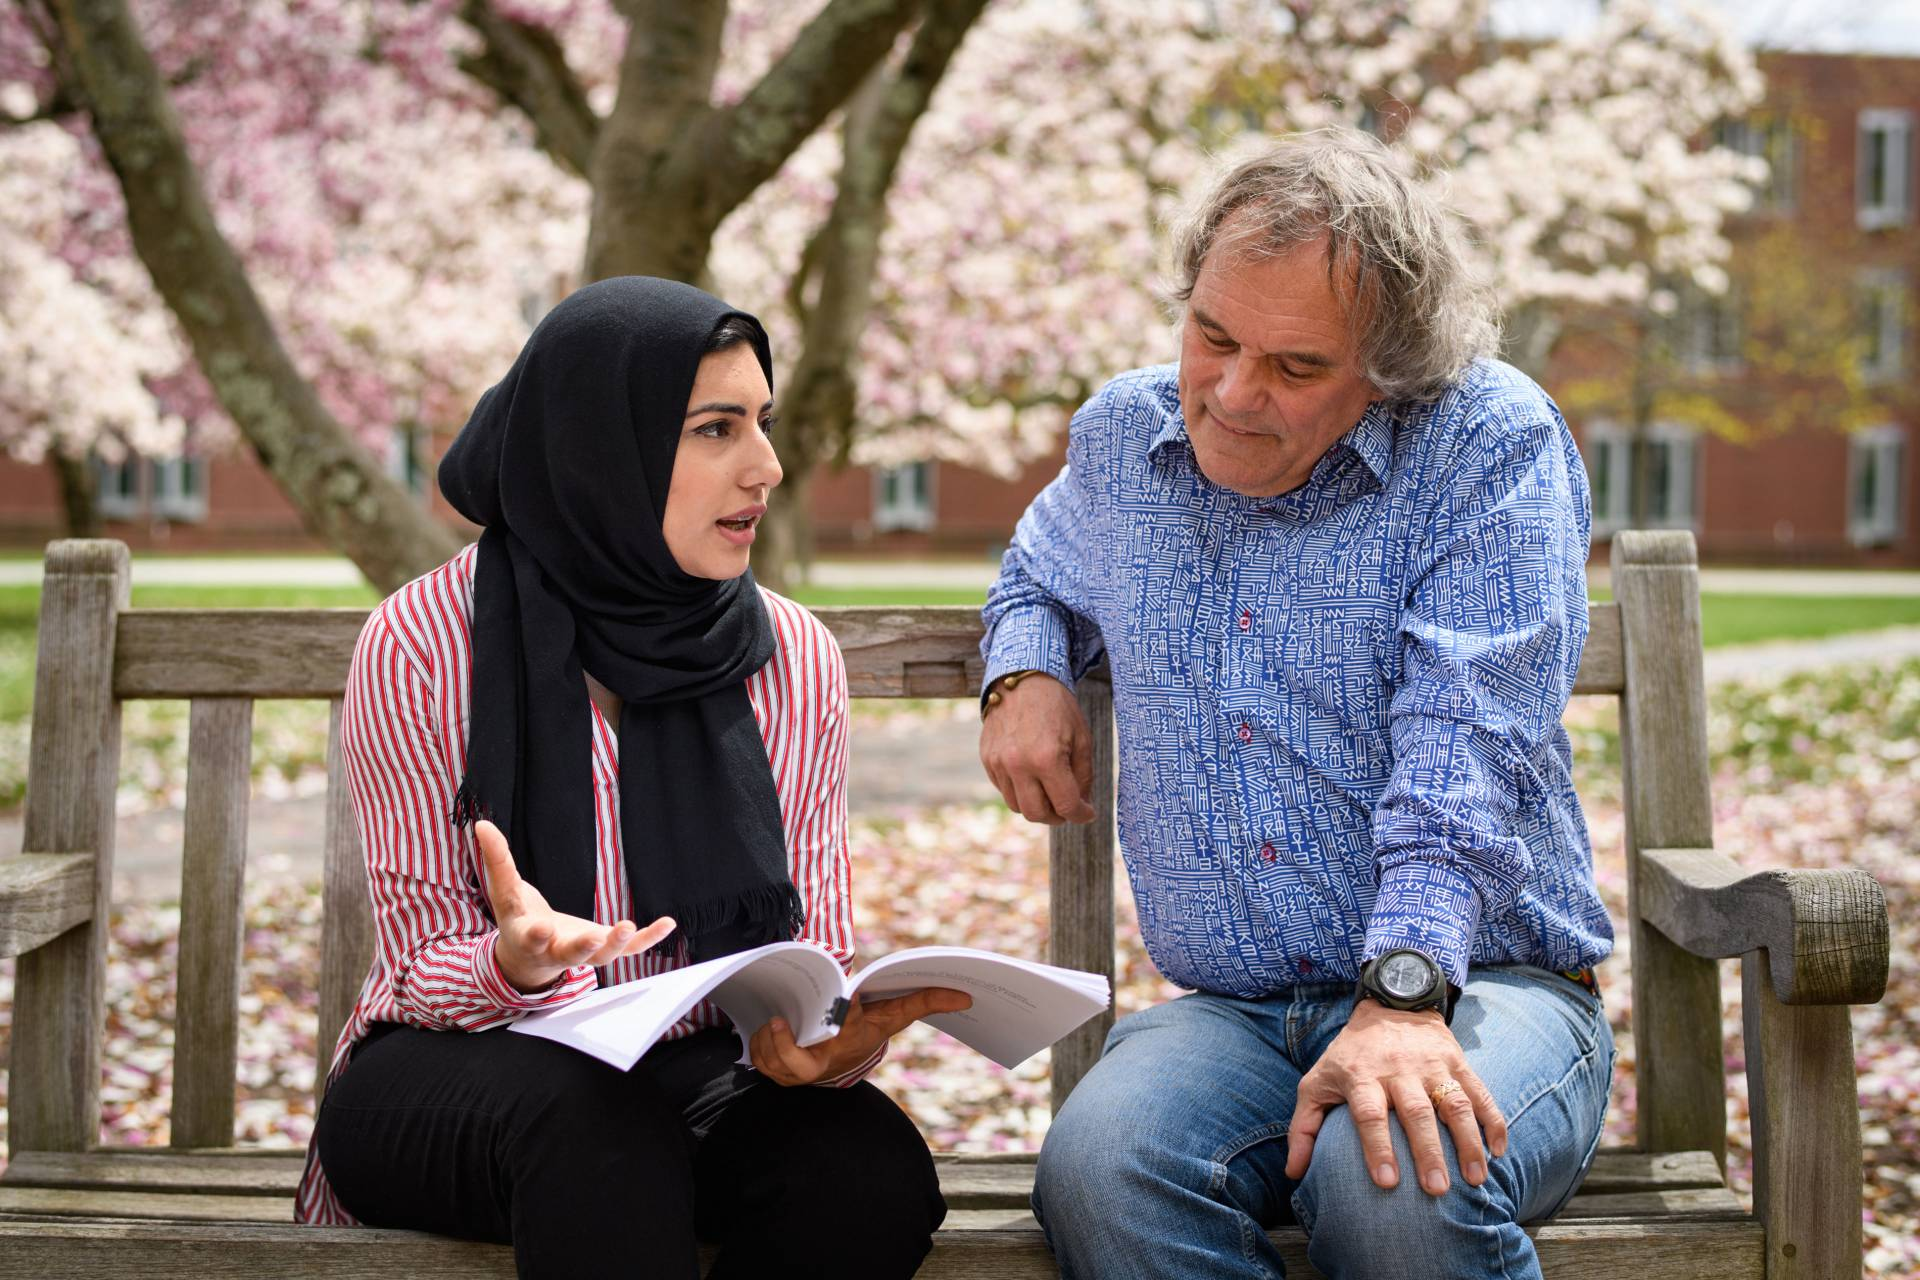 Raia Khan and professor Andrew Dobson sitting outside on bench